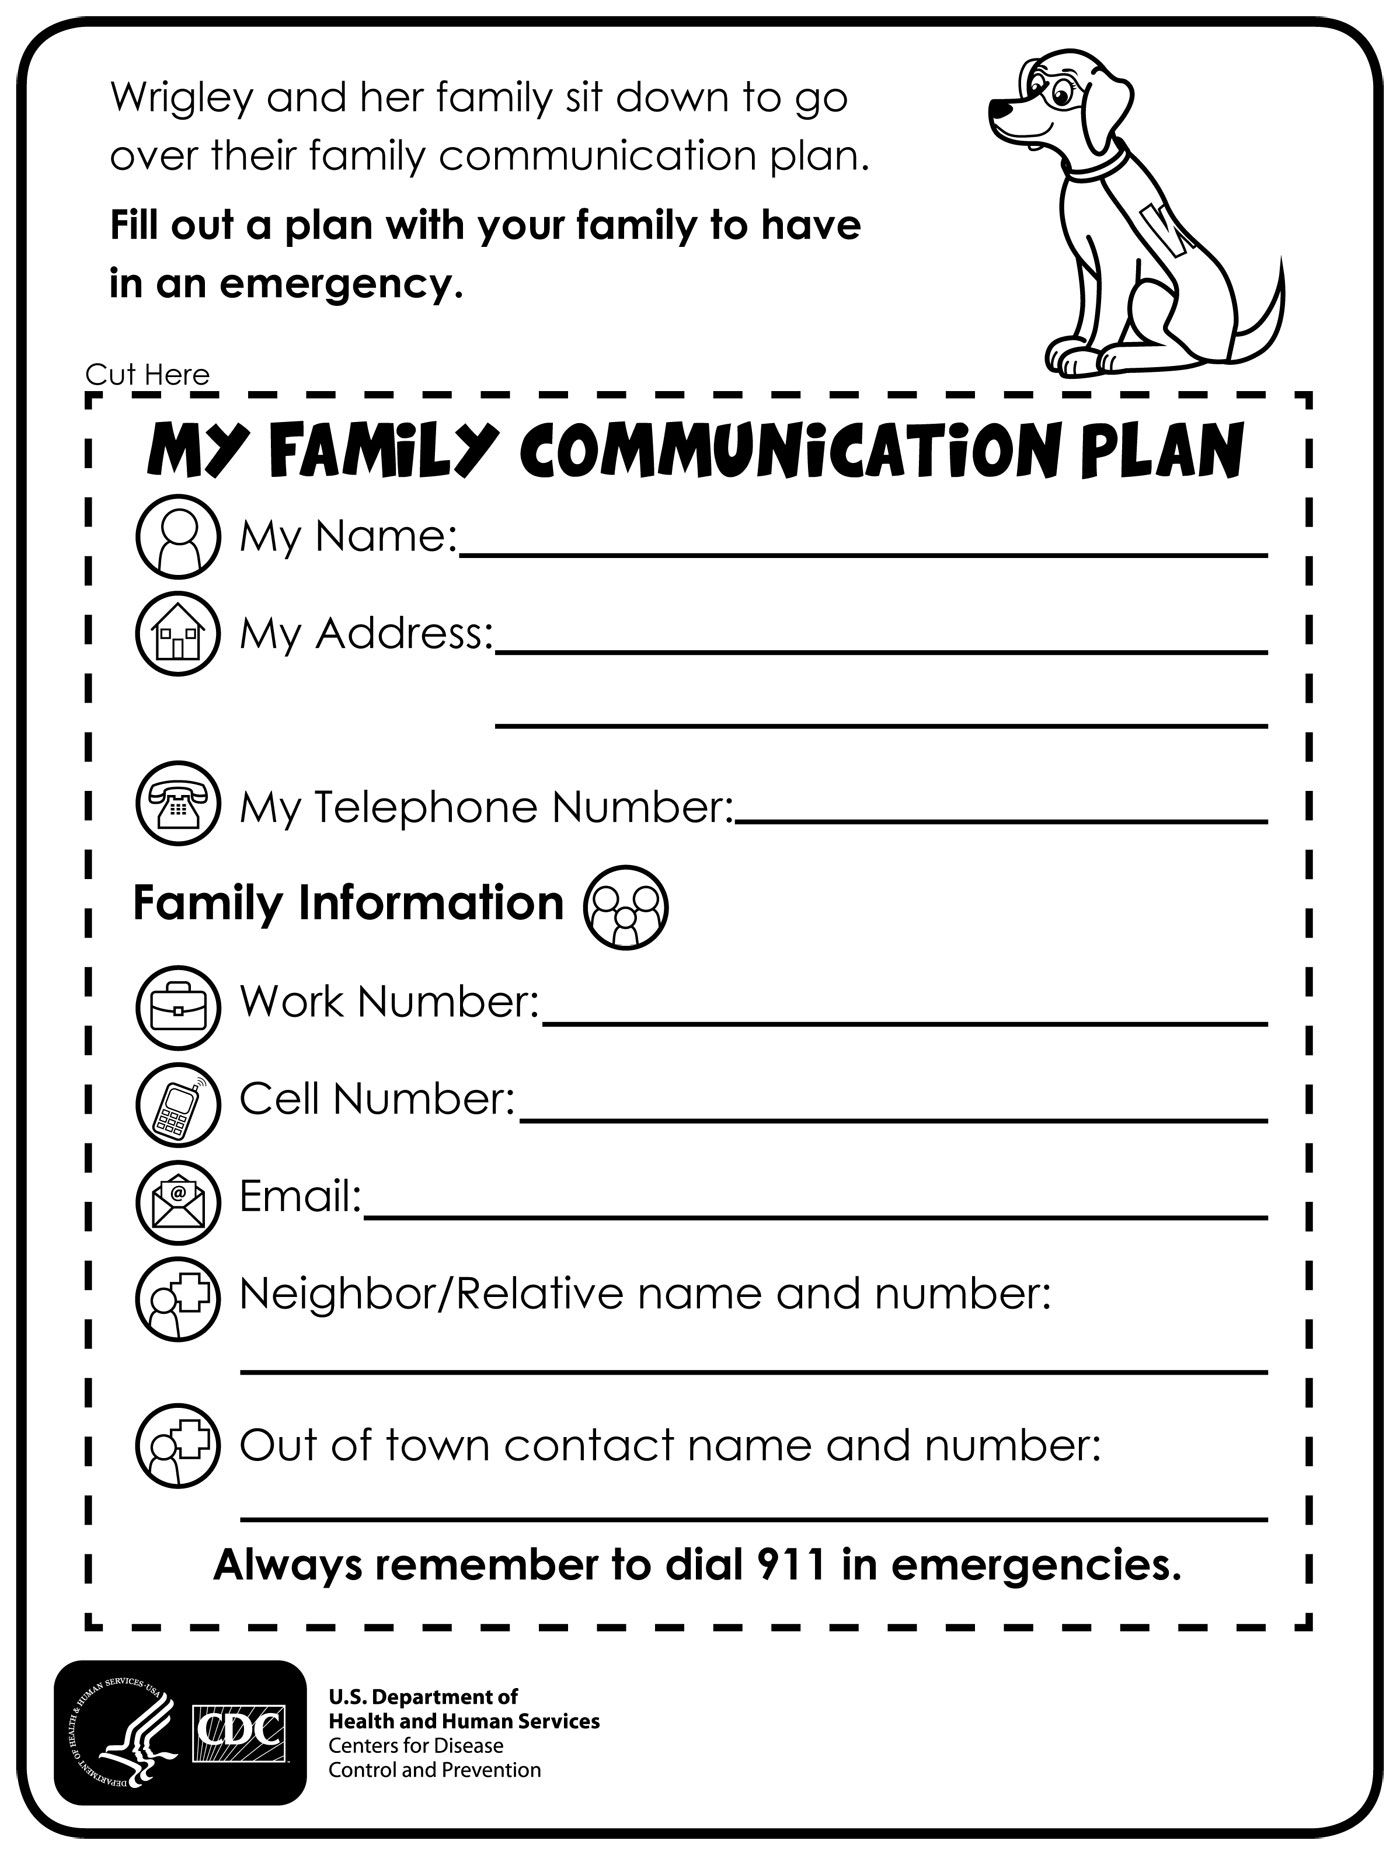 Fill Out A Plan With Your Family To Have In An Emergency